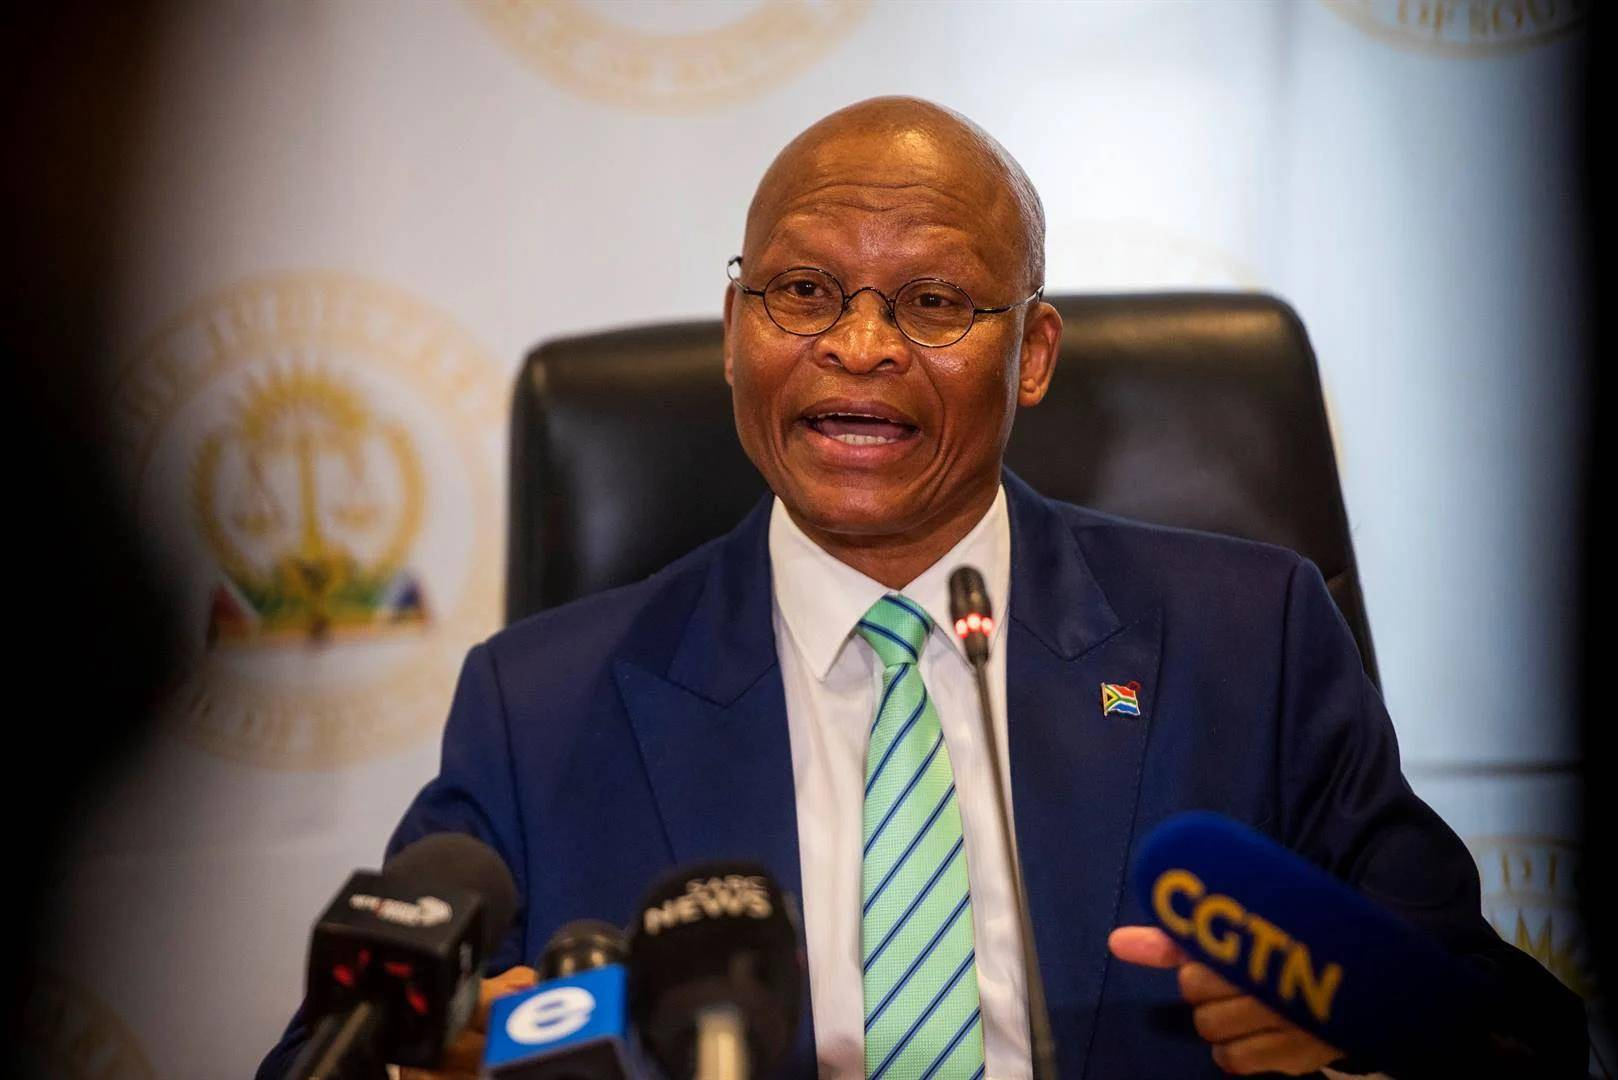 Health advocacy organisation the African Alliance has filed a complaint with the Judicial Services Commission against Chief Justice Mogoeng Mogoeng. Picture: Gallo Images